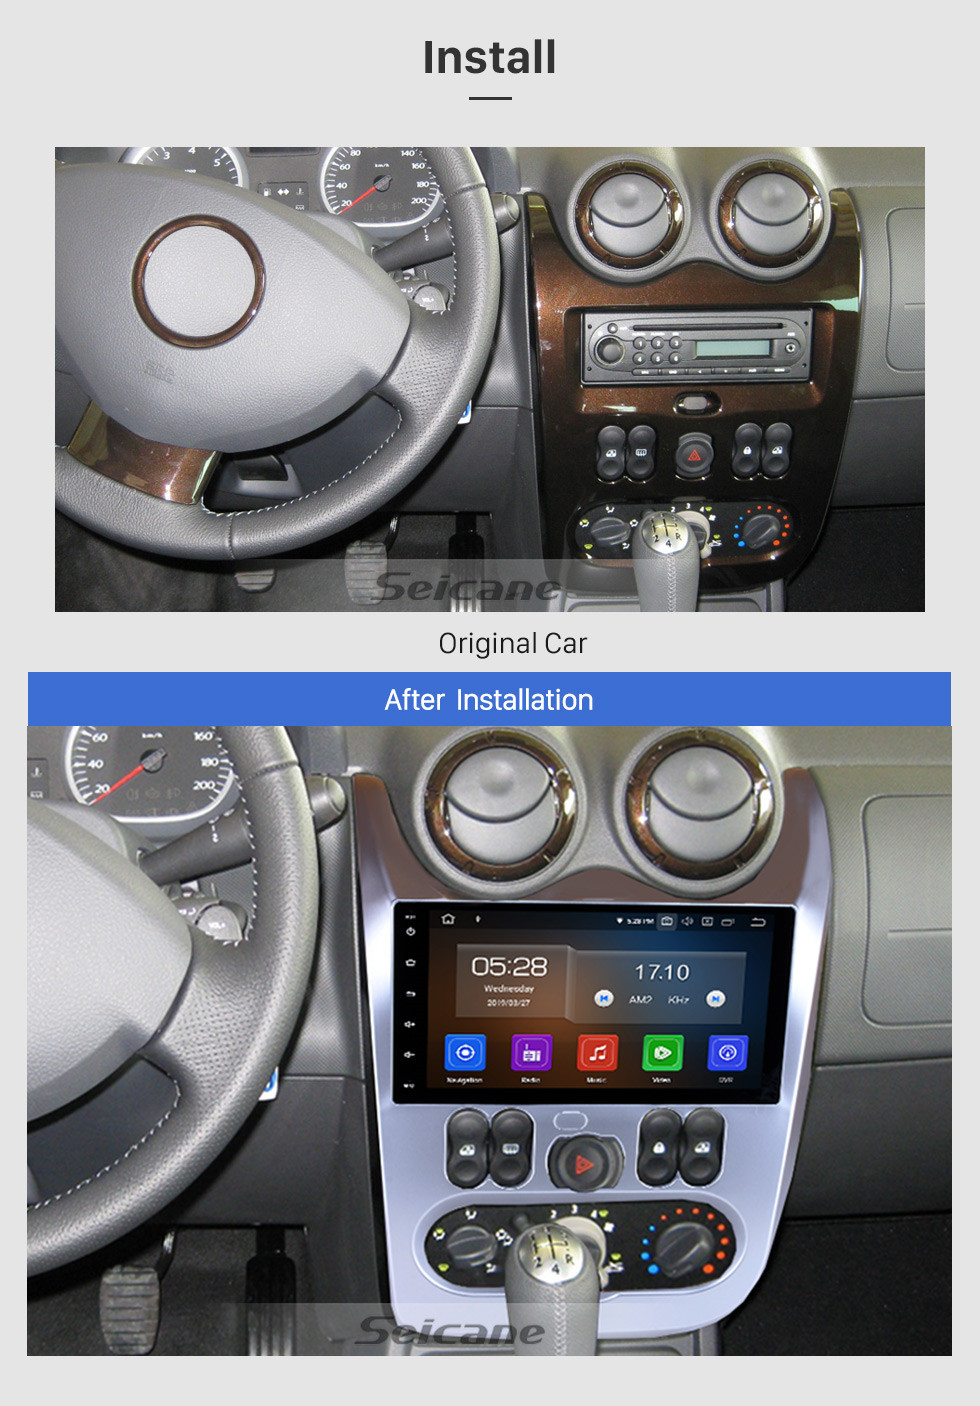 Seicane Android 9.0 de 9 pulgadas HD de pantalla táctil de navegación GPS para 2008 2009 2010 2011 2012 RENAULT DUSTE Logan R radio estéreo Bluetooth de apoyo auxiliar de audio del sistema 1080p Video 4G WIFI Rearview Camera control del volante